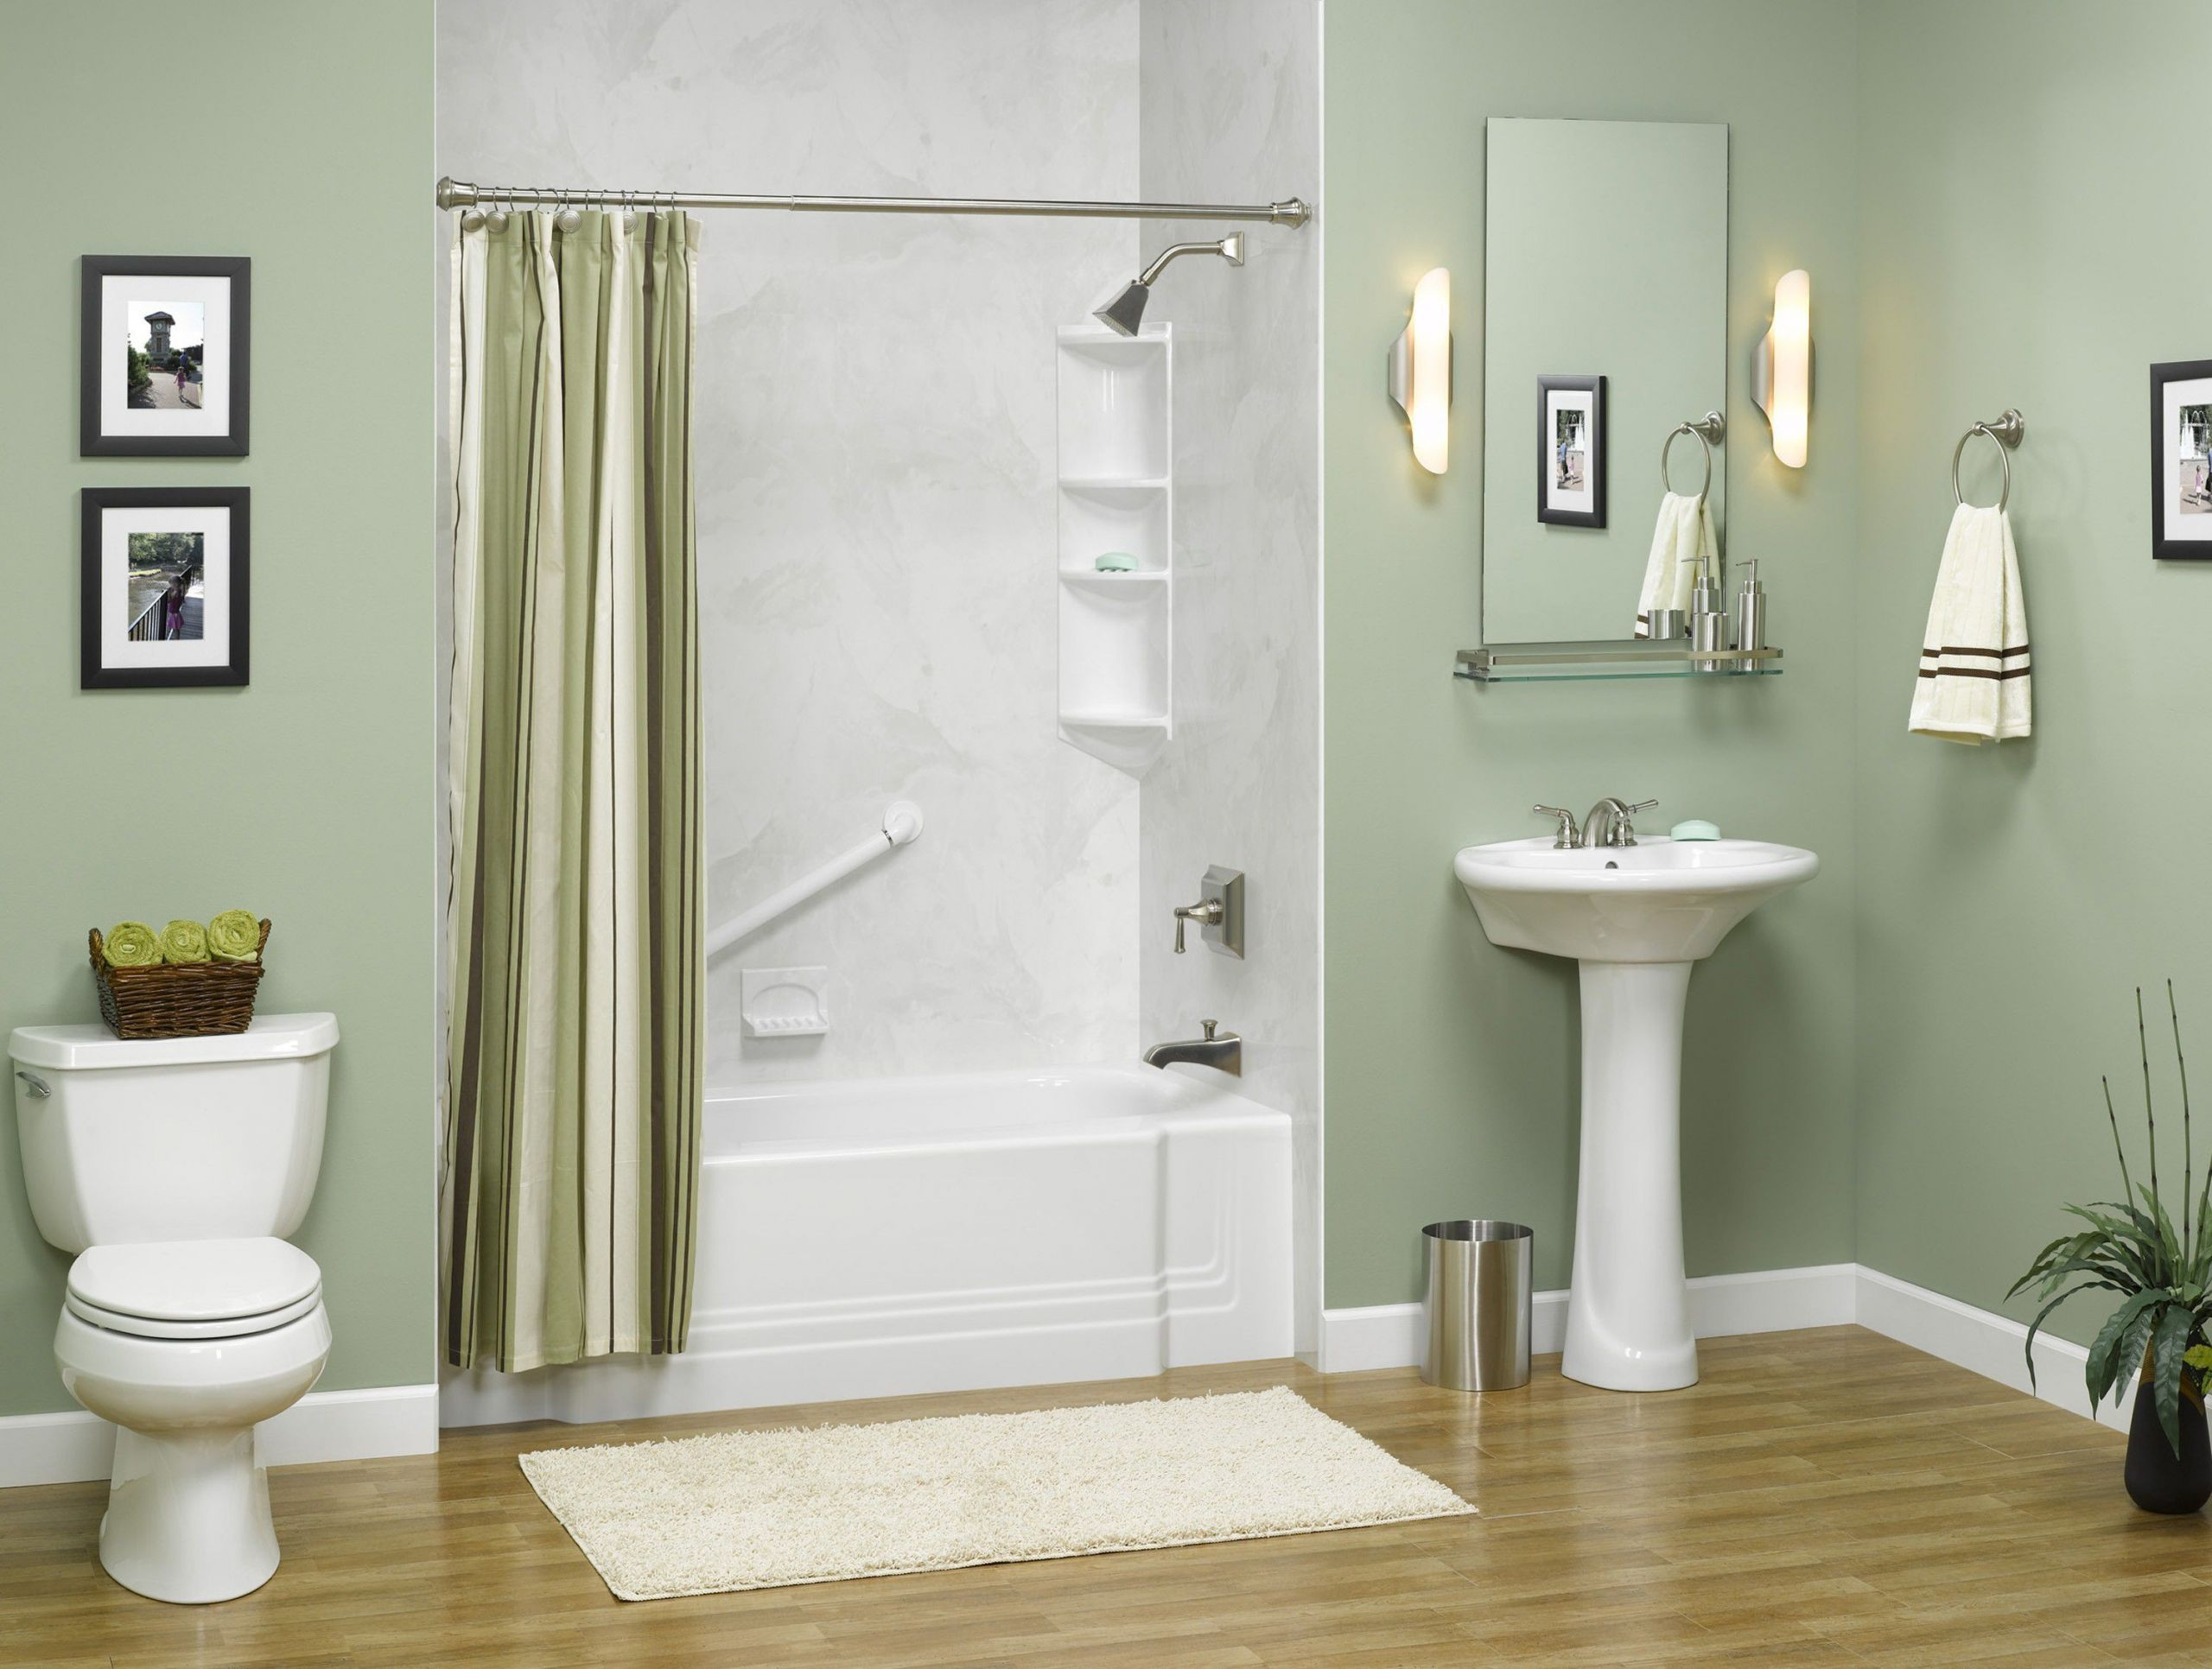 Paint To Use In Bathroom  Bathroom Paint Ideas in Most Popular Colors Artmakehome